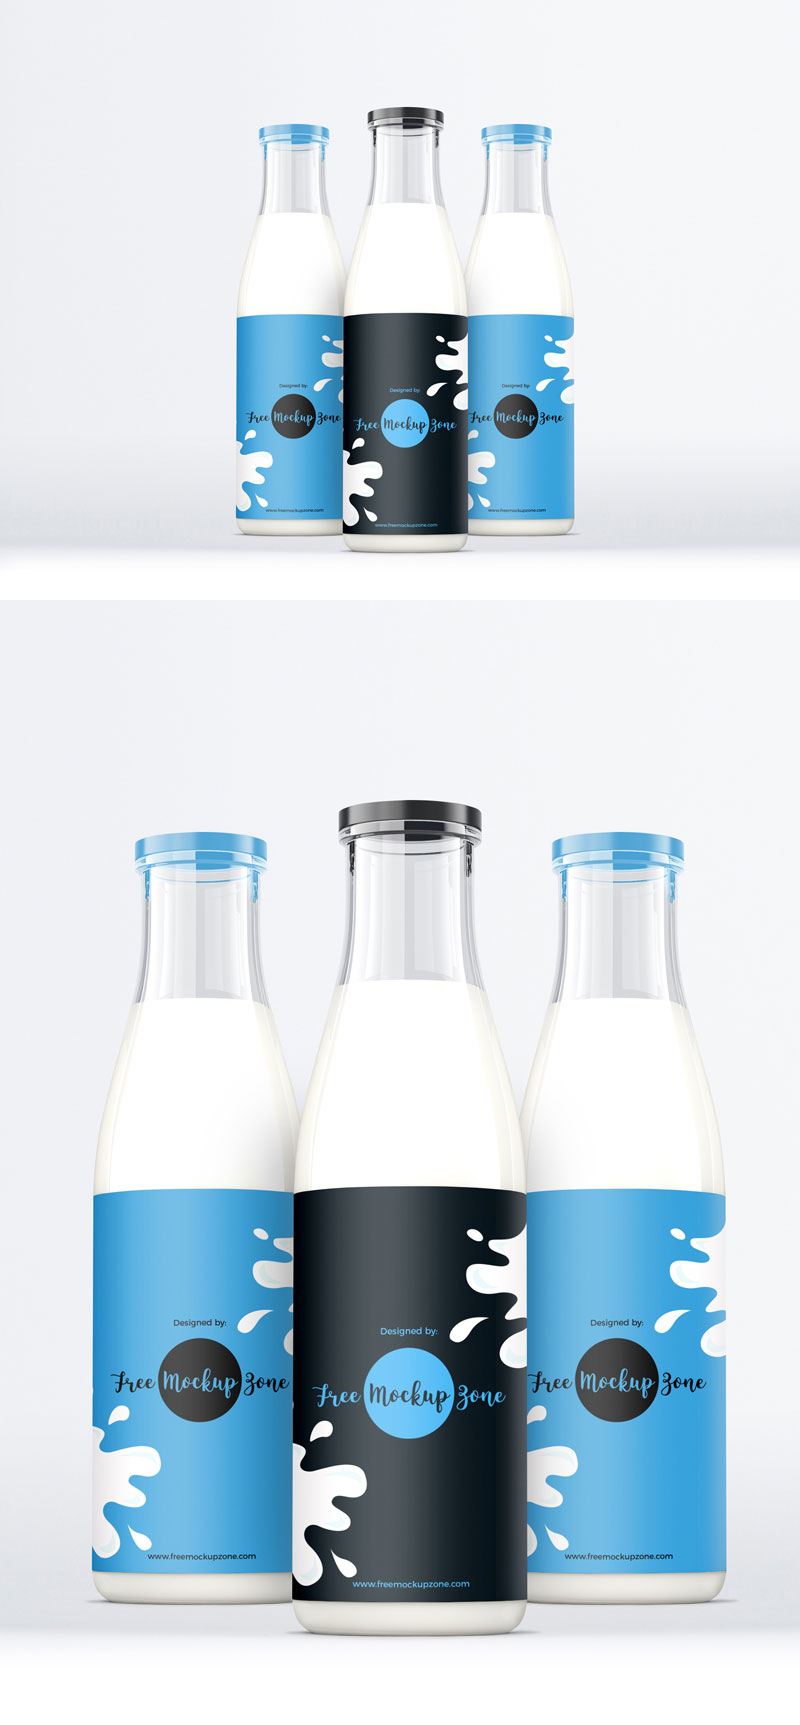 Free-Glass-Milk-Bottle-Mockup-2018-For-Milk-Packaging-Designs-Presentation